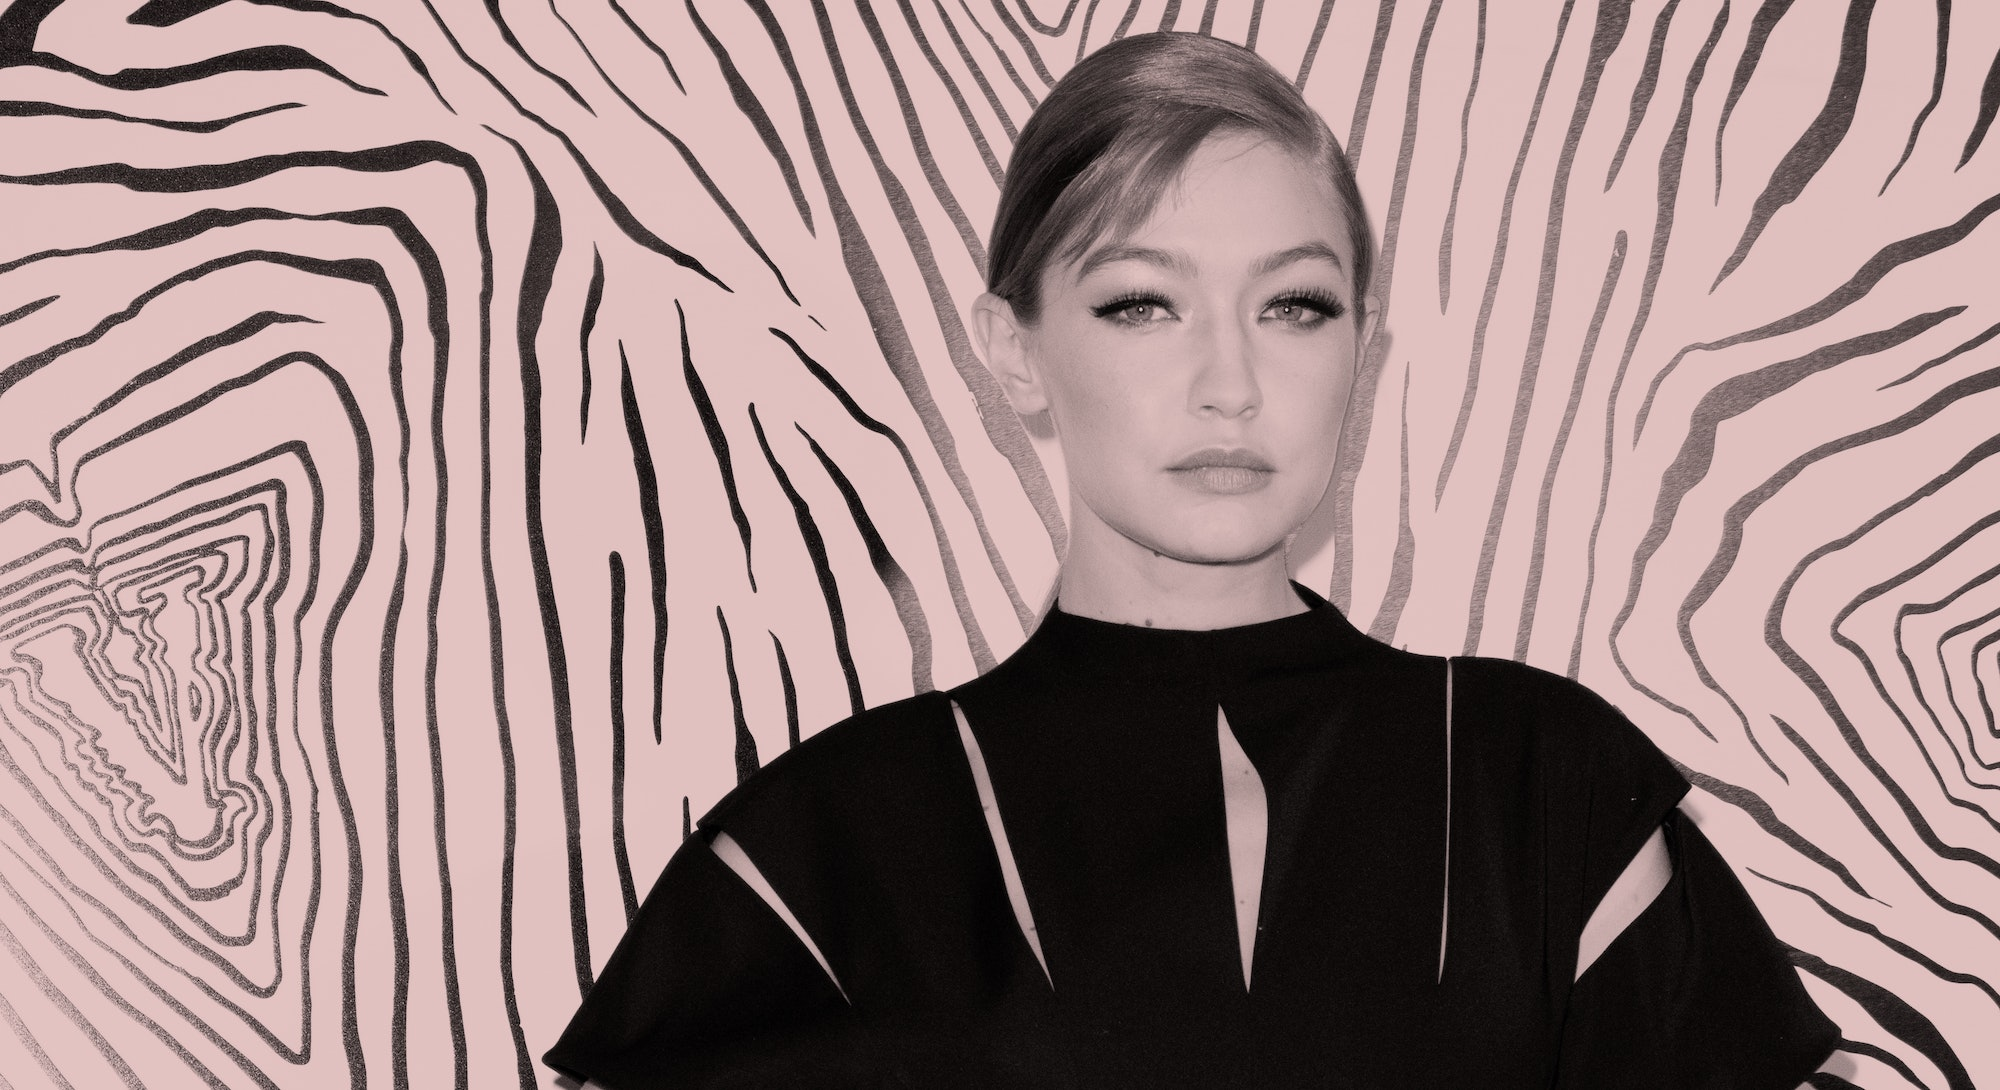 Gigi Hadid poses in a black dress, her hair pulled back in a tight bun.